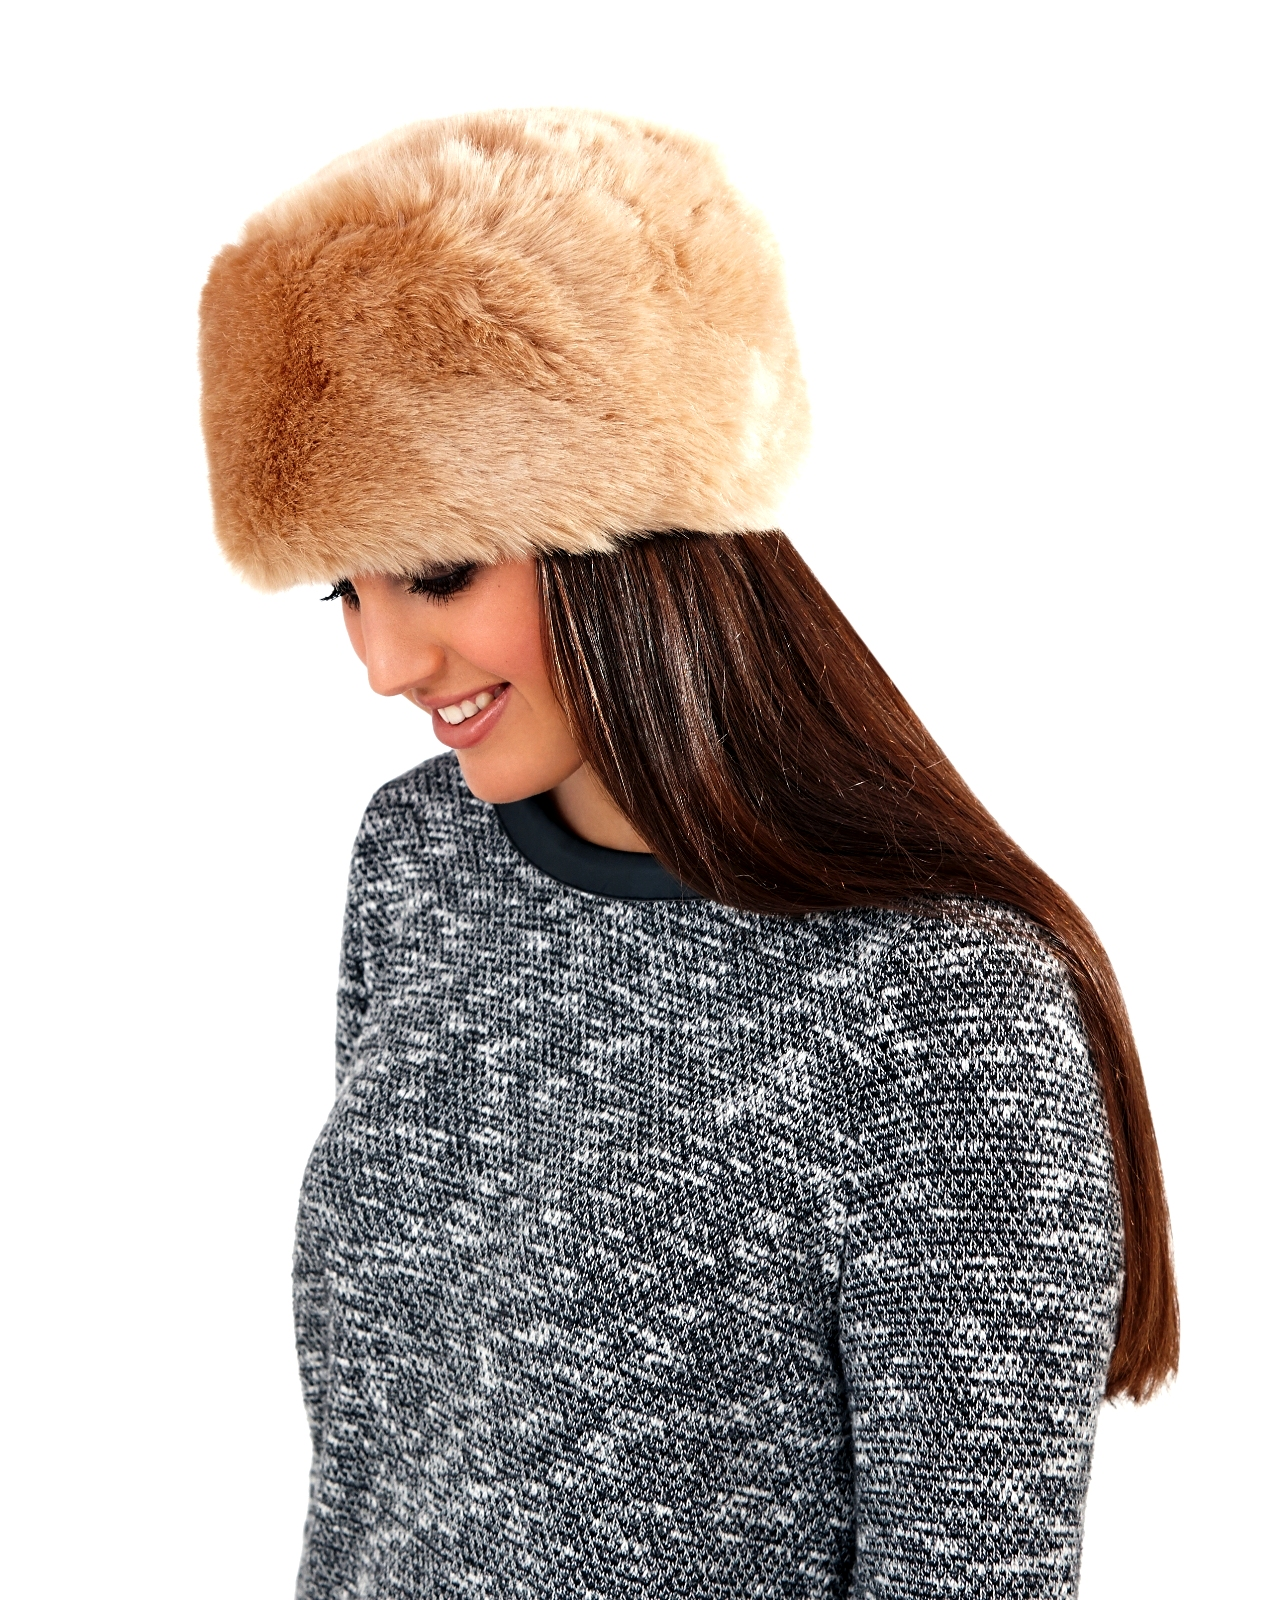 Womens Fashion Fur Hats. Sort By. Sort by Price: Highest to Lowest; Sort by Price: Lowest to Highest Fox fur hats and mink fur hats for women. Feel like a princess wearing the hats in this category. Turn heads as you walk down the street. Nibe from UK May 7,